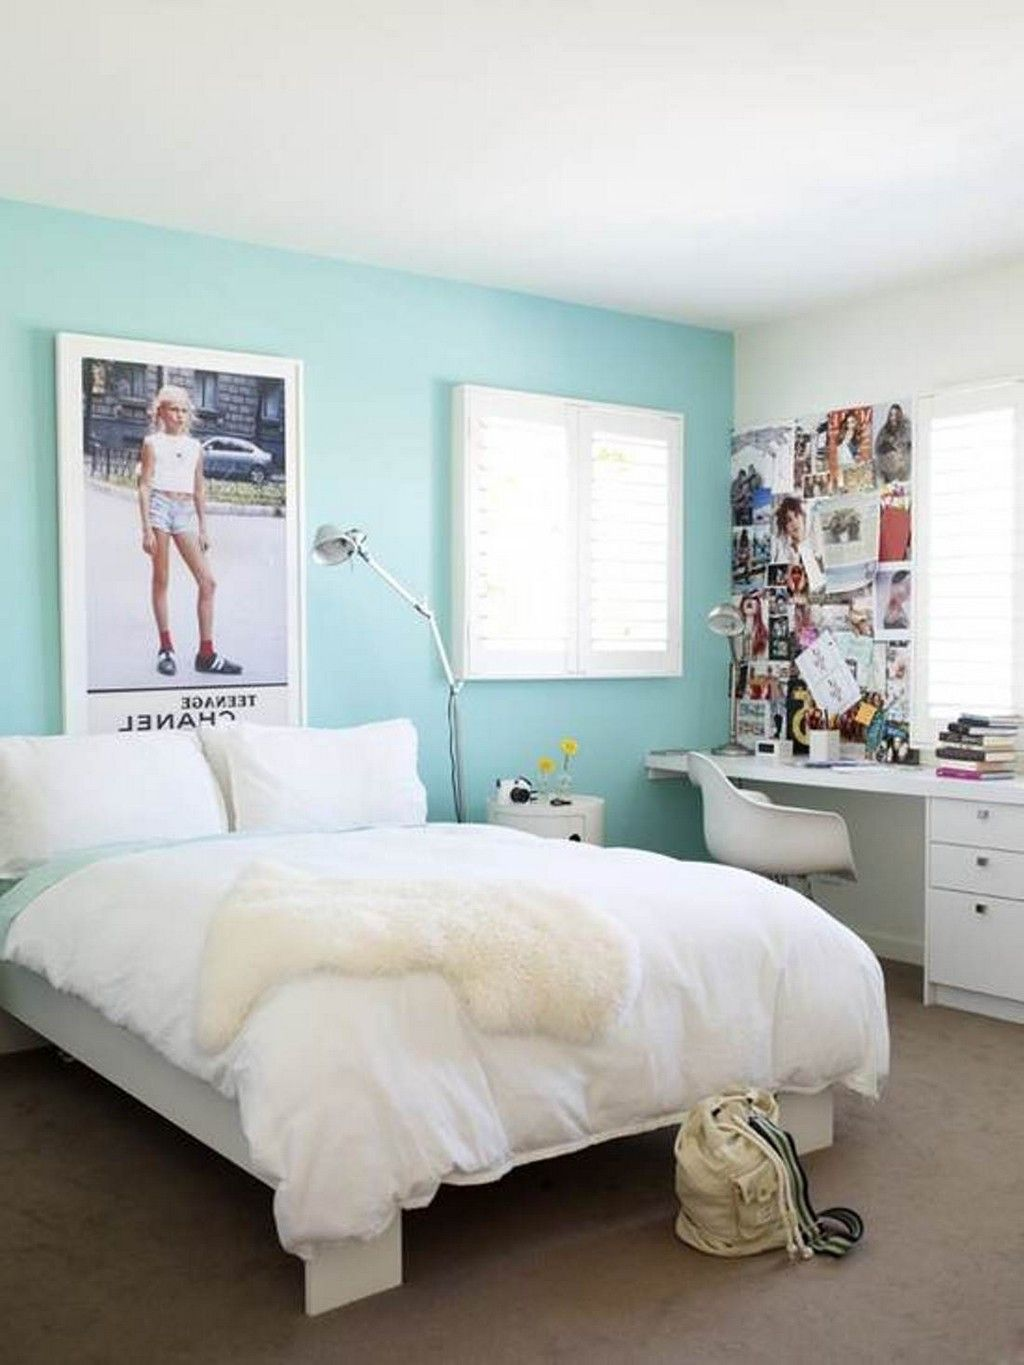 Ideas For Teen Girl Rooms bedroom: calming blue paint colors for small teen bedroom ideas